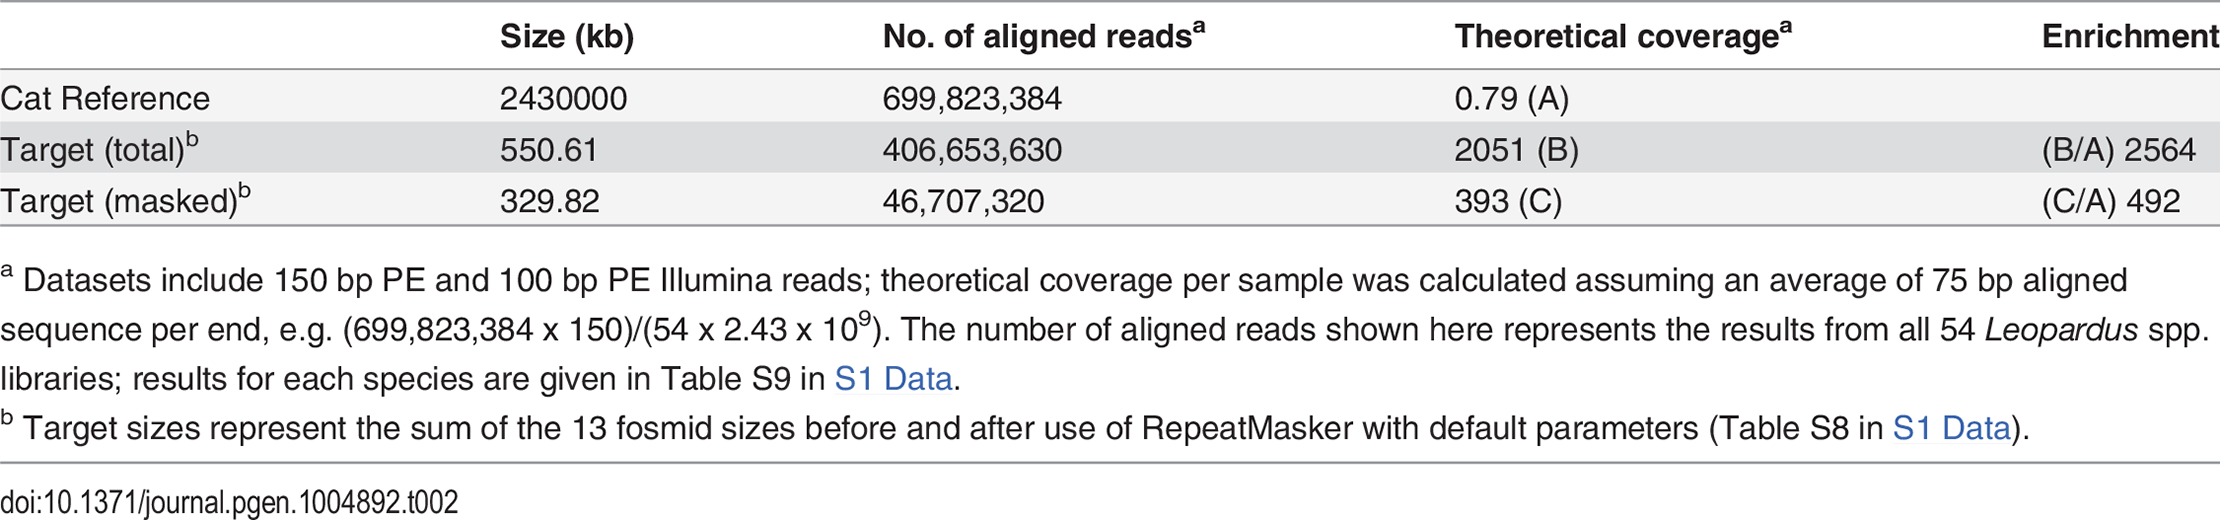 Alignment coverage summary for CATCH-Seq libraries.